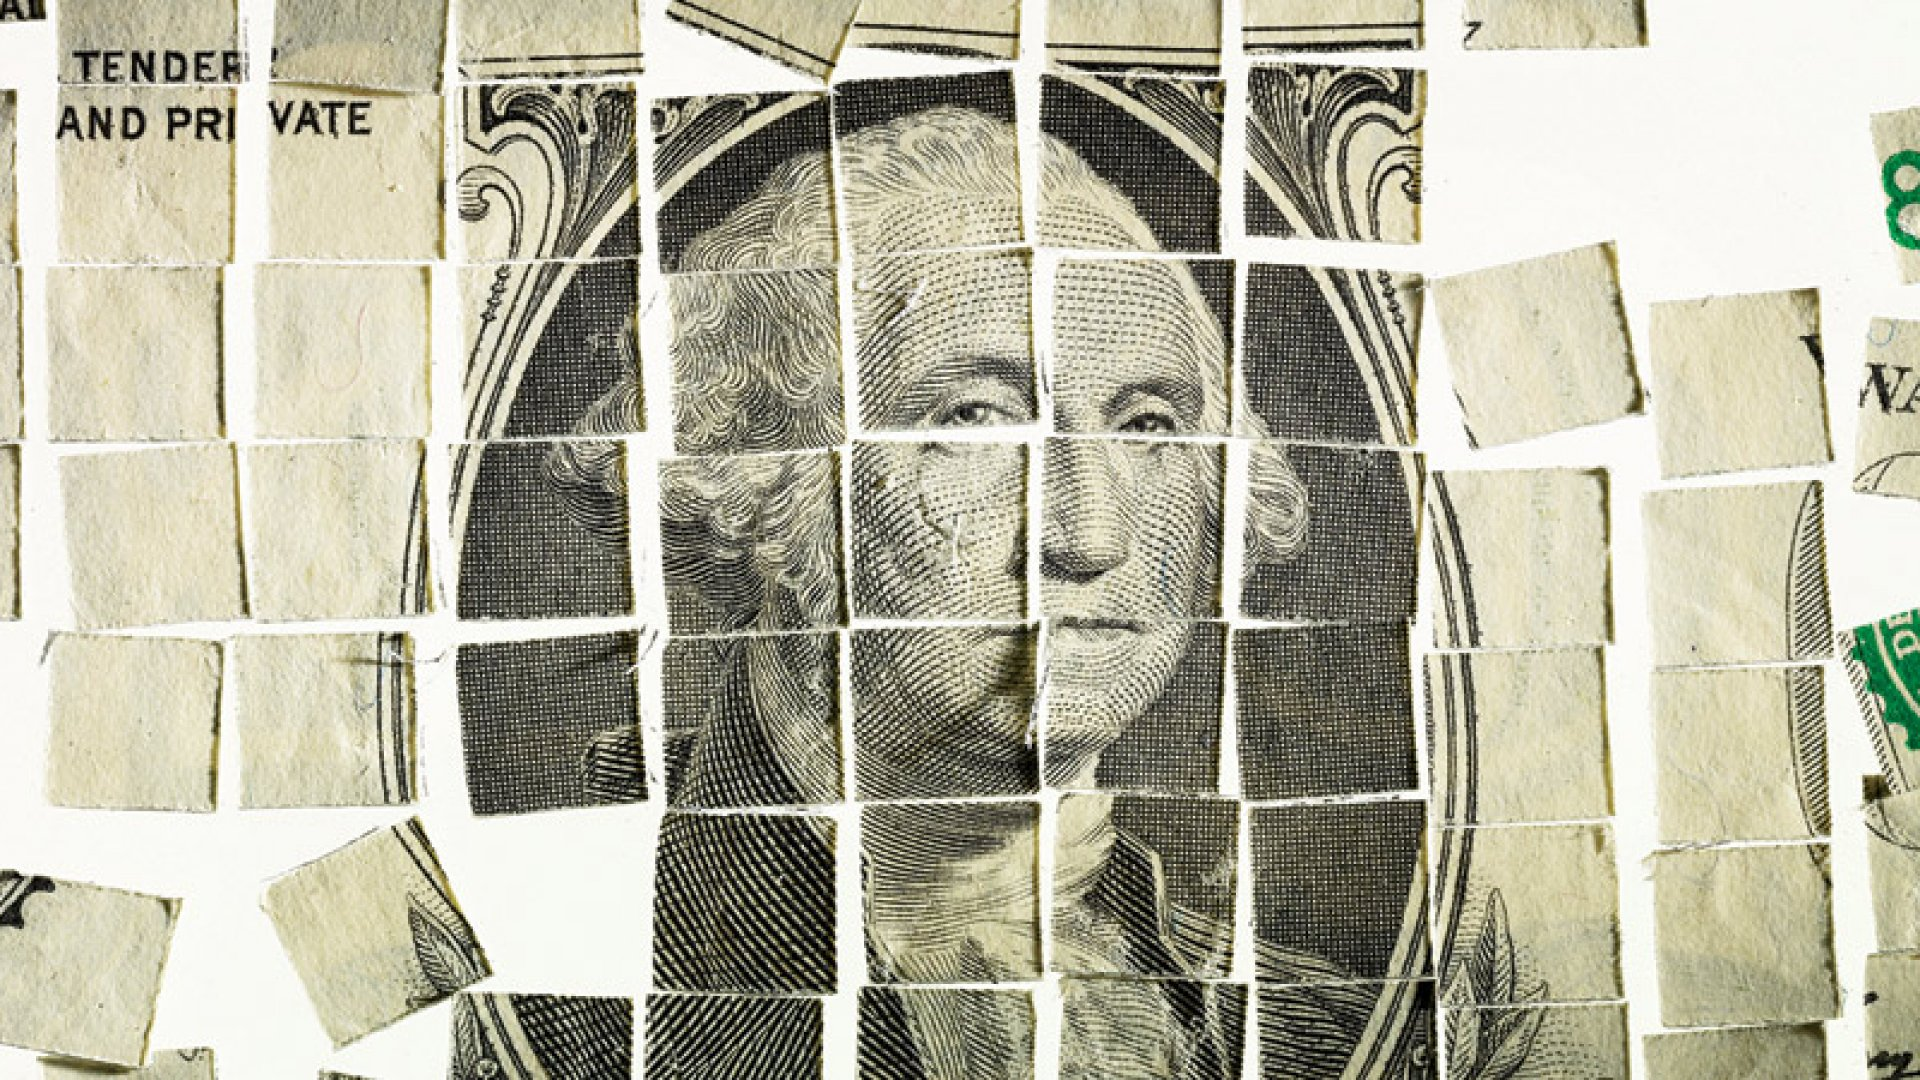 How to Create an Expense-Account Policy That Won't Be Abused